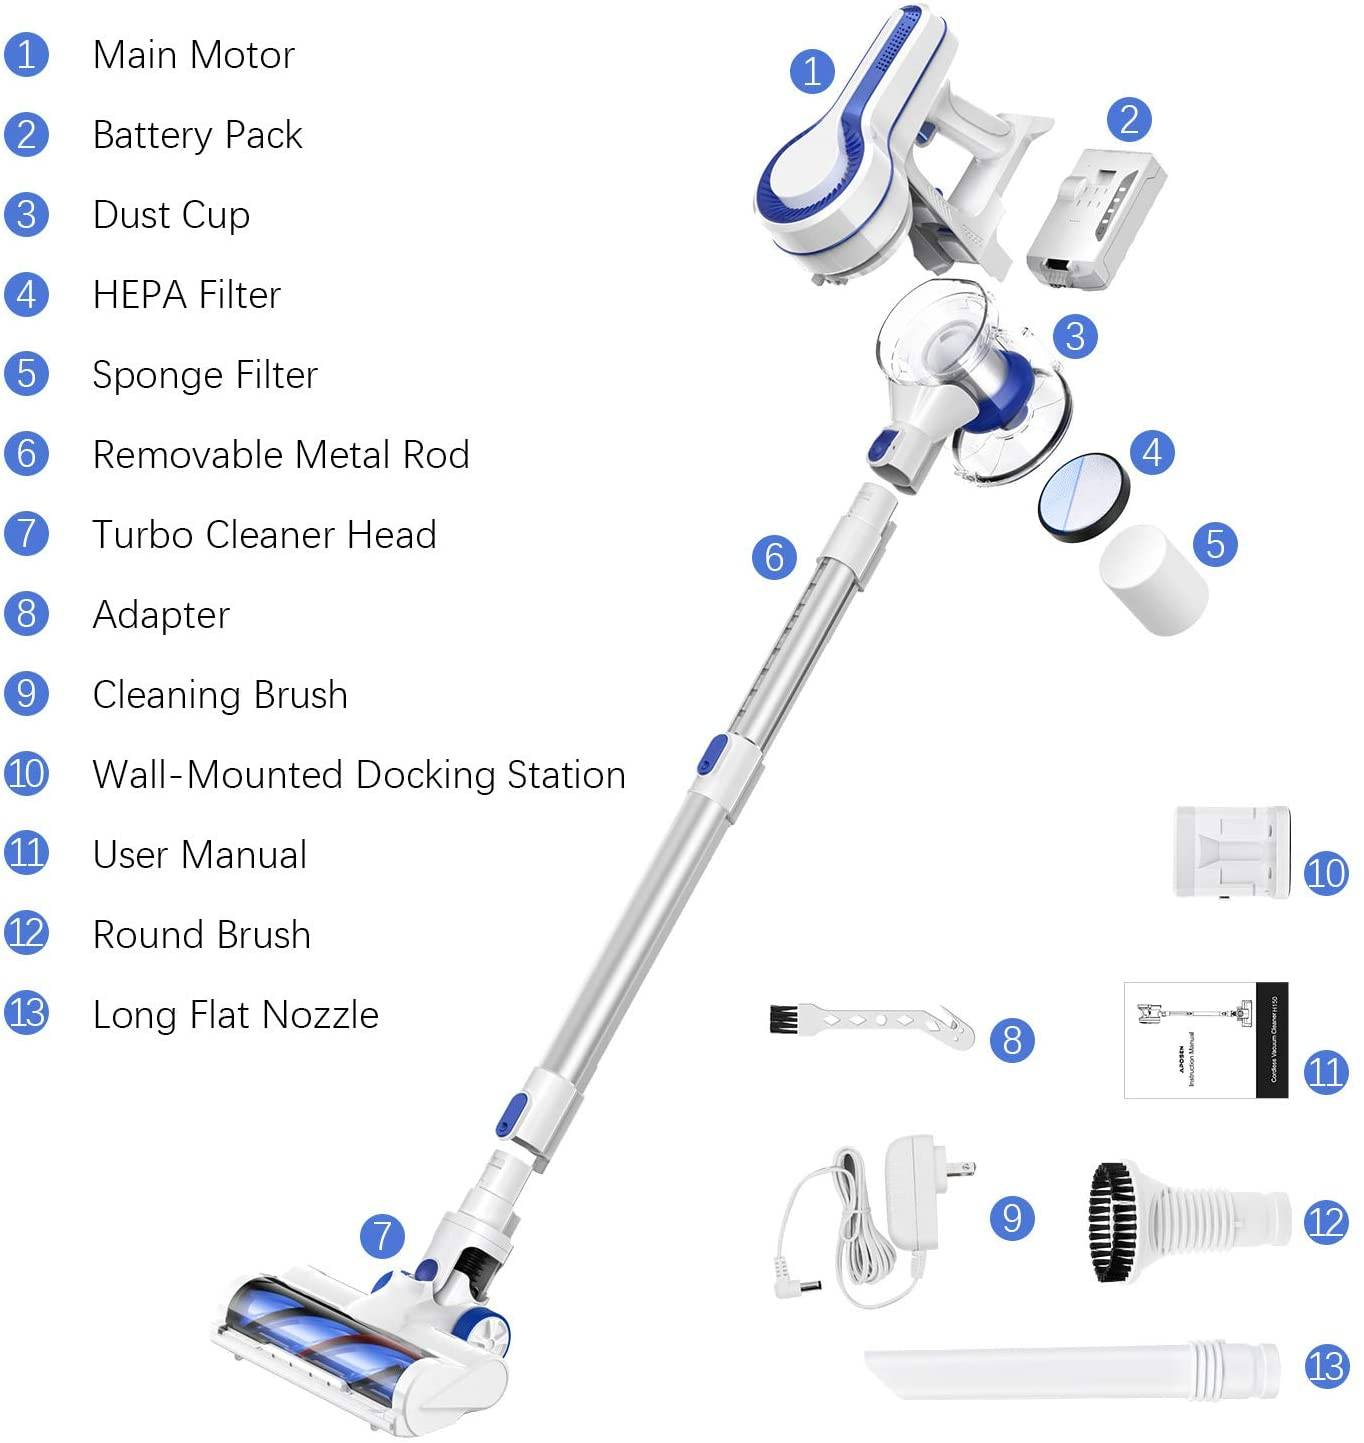 APOSEN Upgraded 3rd Cordless Vacuum Cleaner H150 and accessories